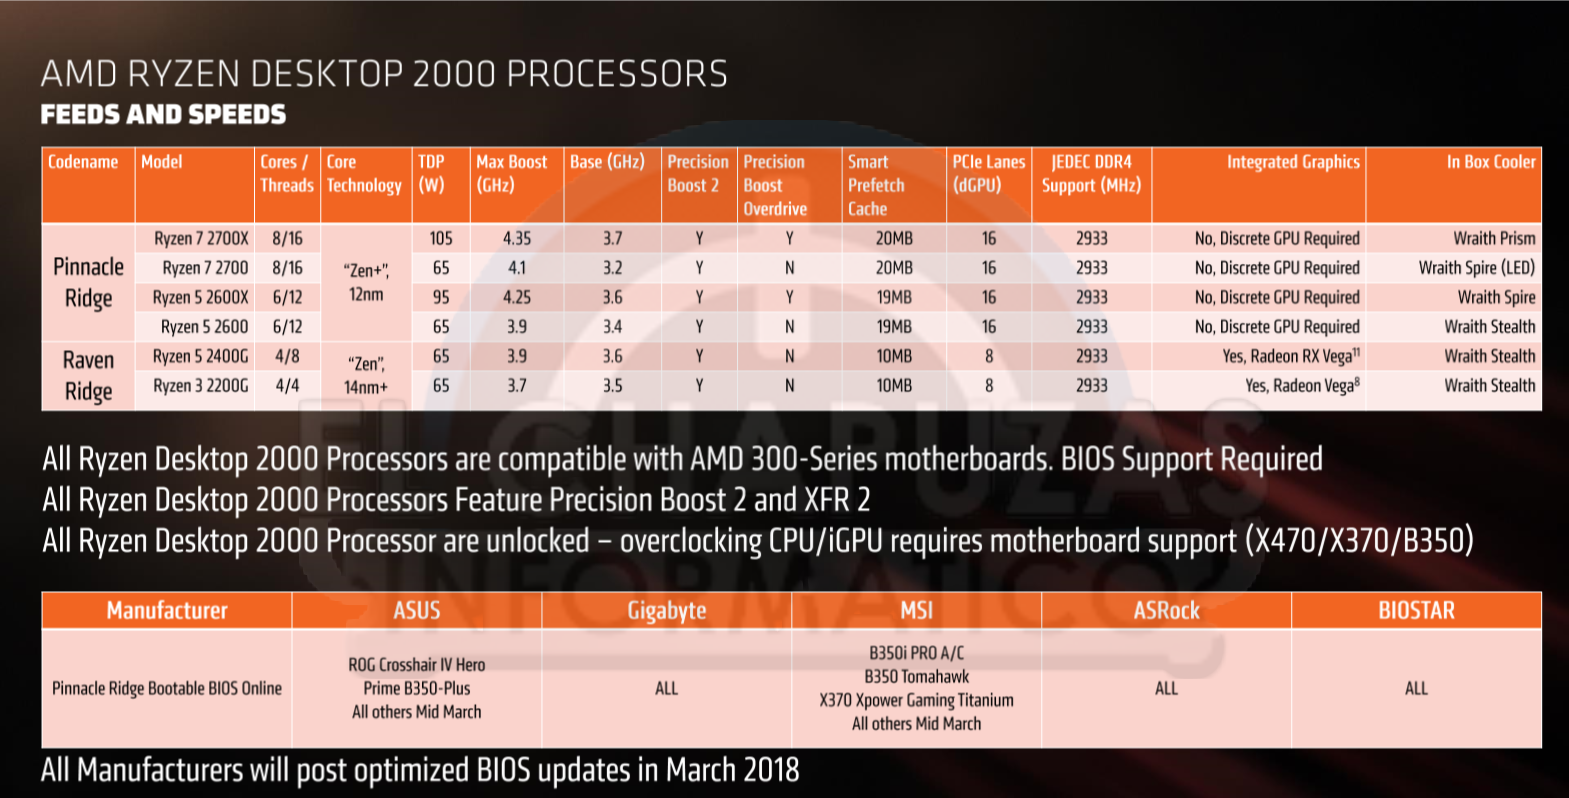 Amd Ryzen 2000 Series Cpu Prices And Full Specs Leak Out